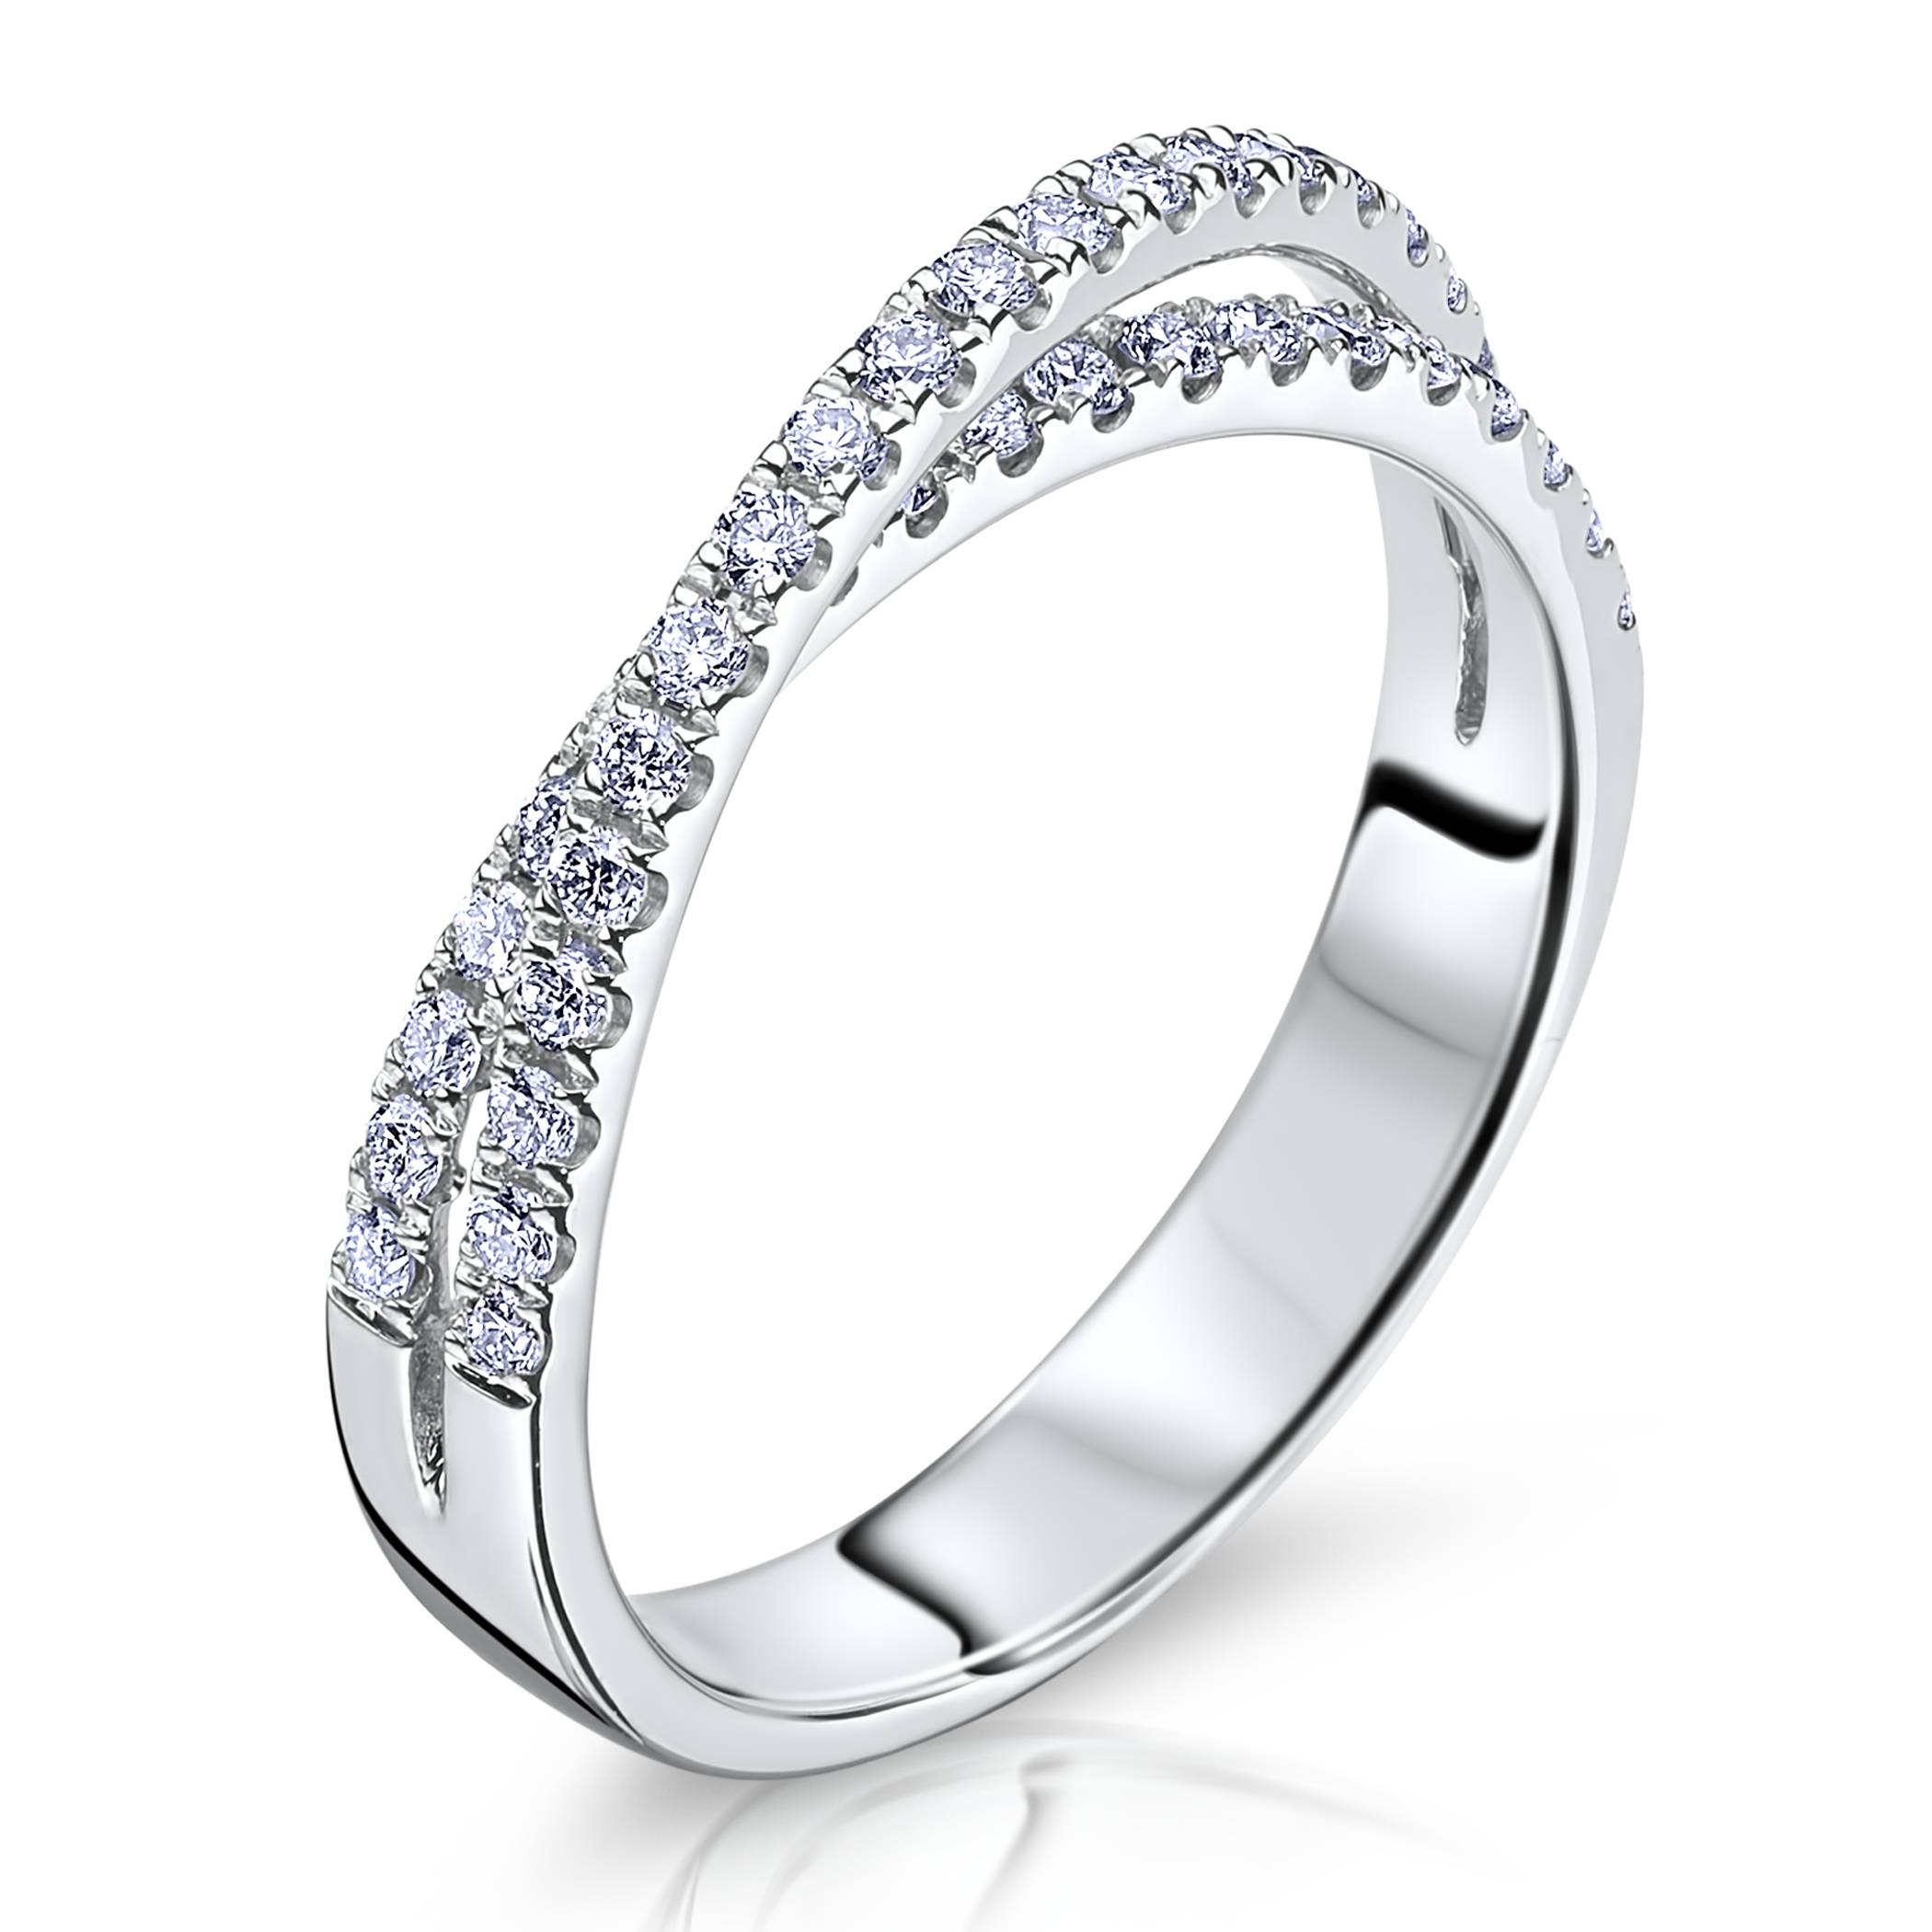 rings heart website kay jewelers fresh scott jewellry categories product bolenz s diamond engagement ring